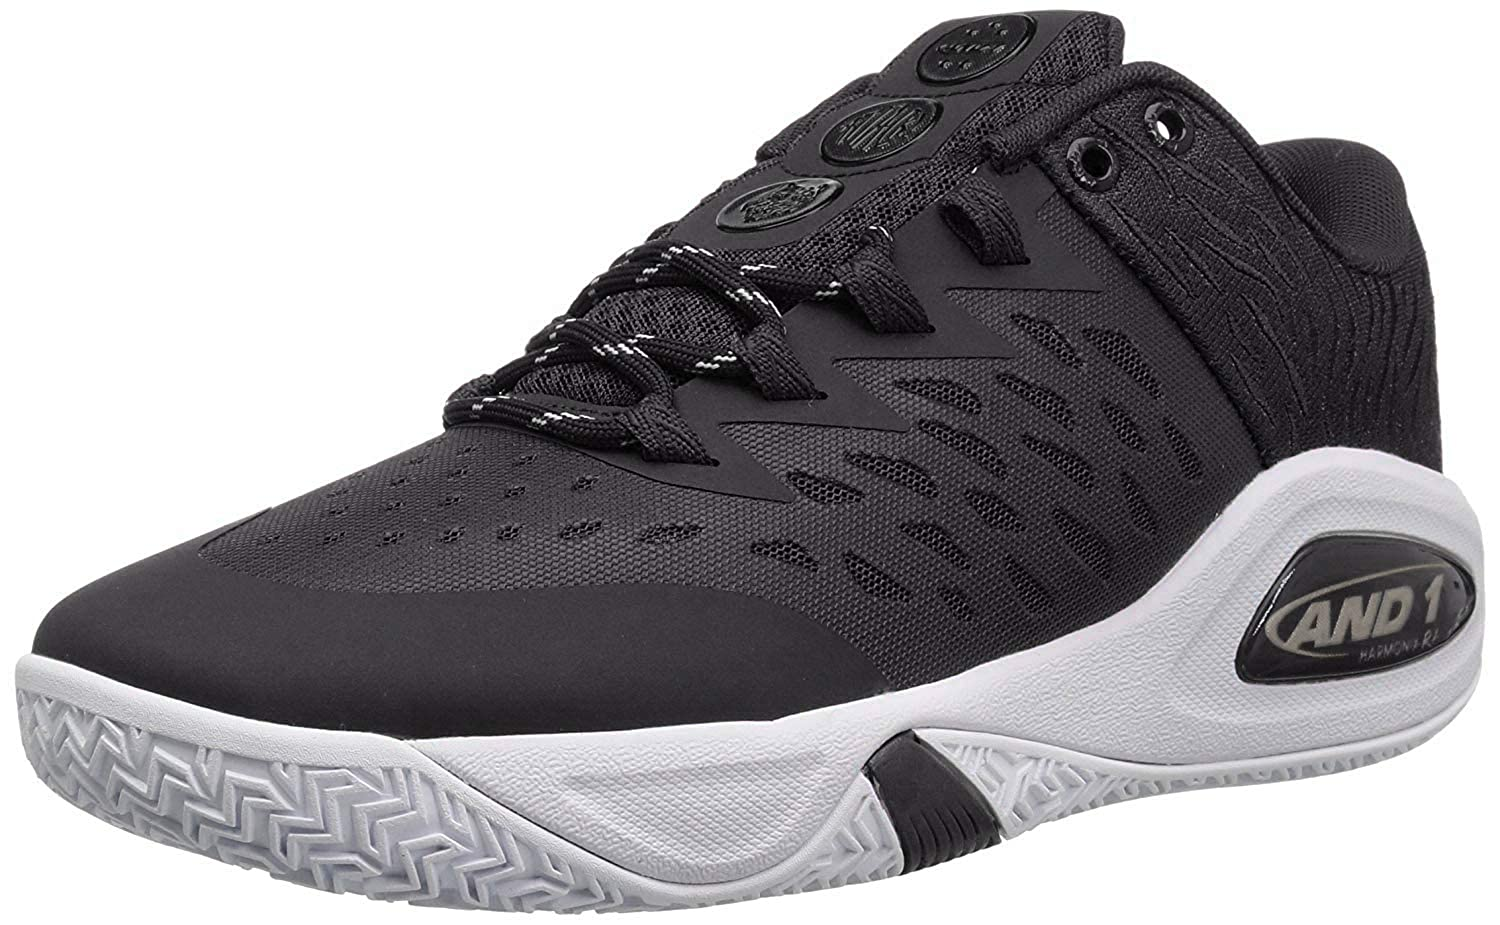 AND 1 Men s Attack Low Basketball Shoe